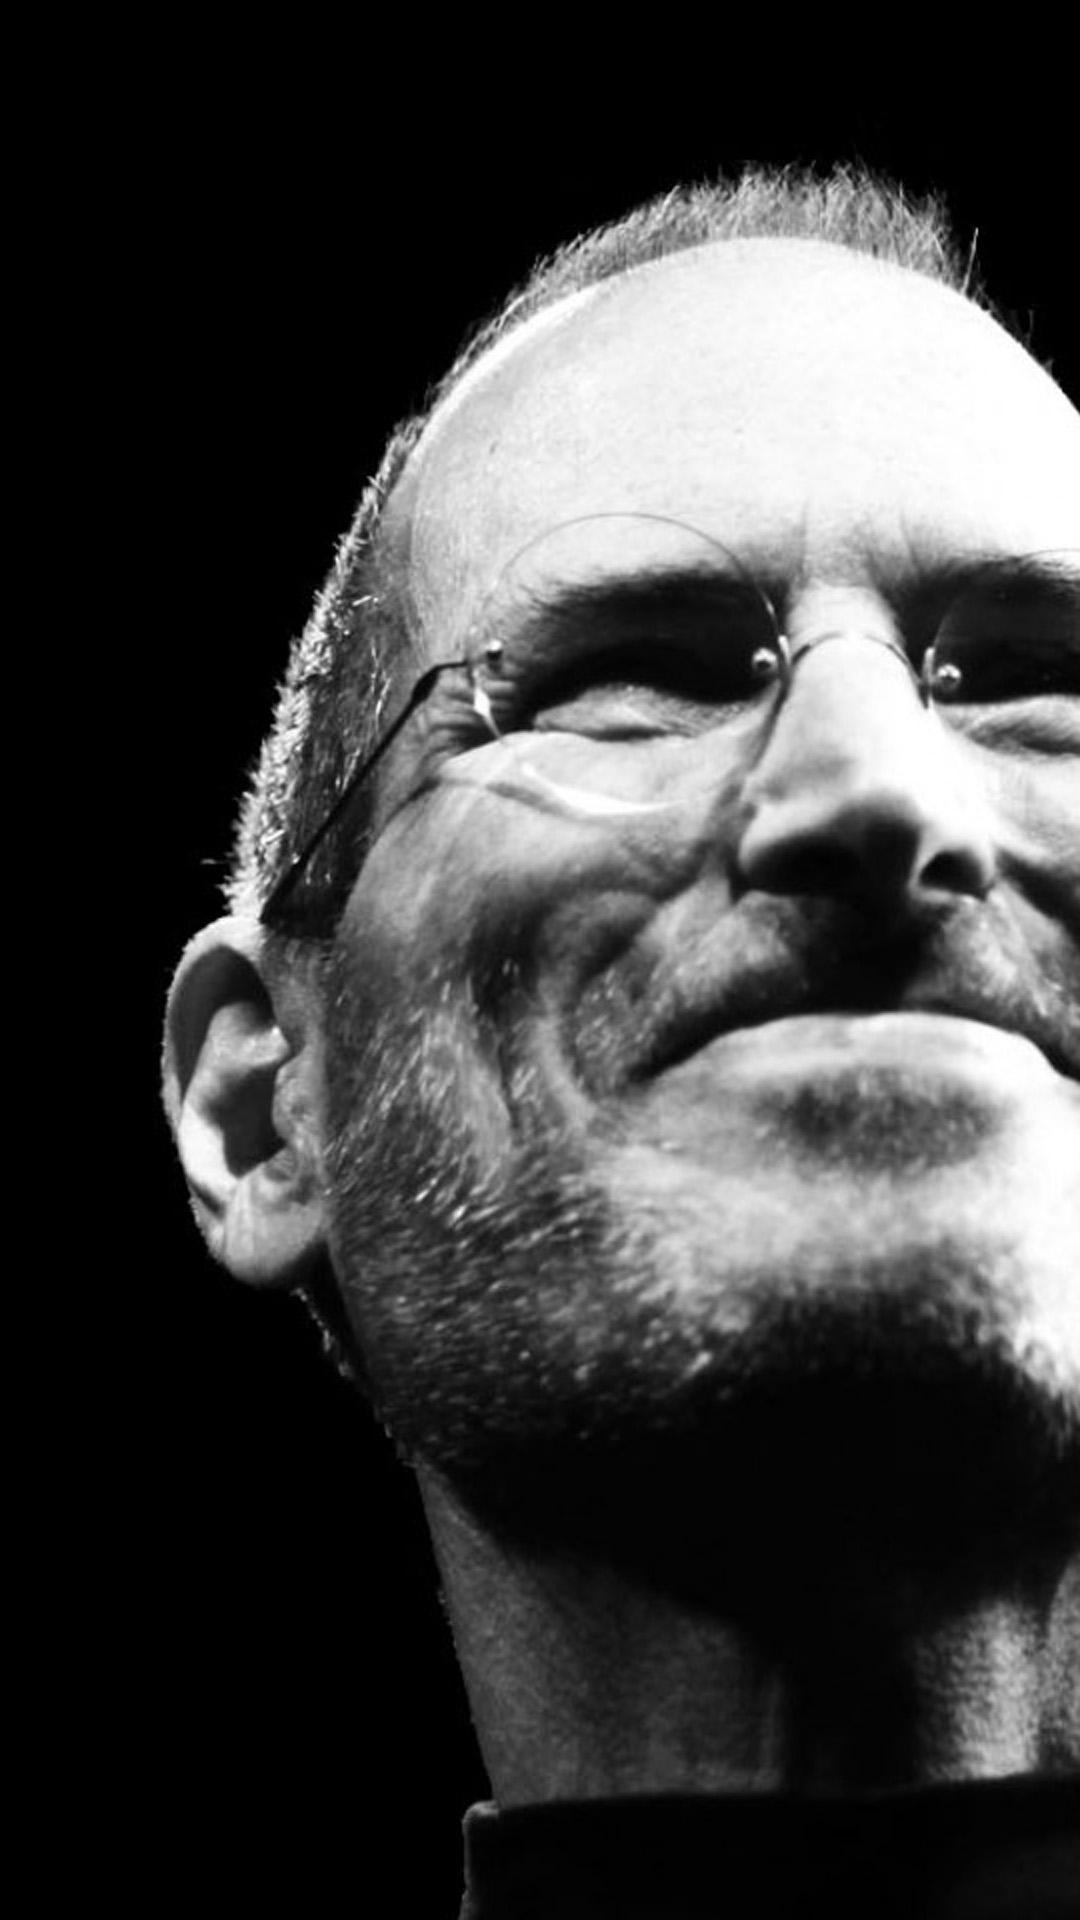 Steve Jobs Tribute Wallpapers For Iphone 6 And Iphone 6 Plus